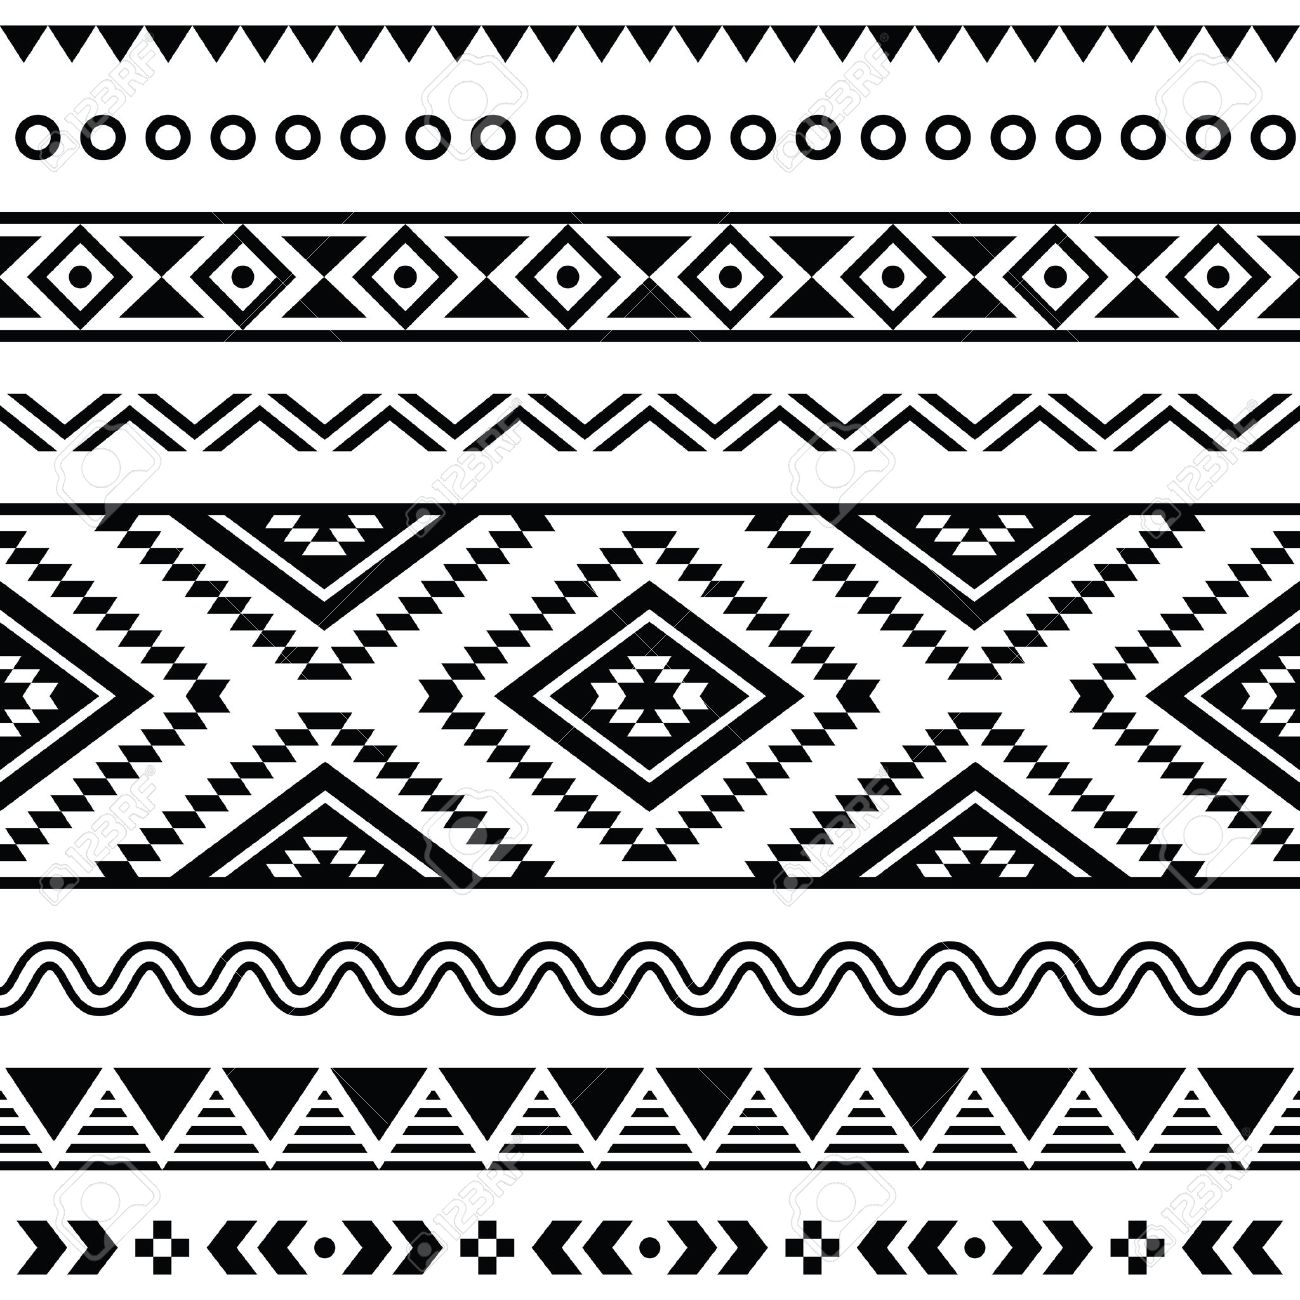 Background geometric mexican patterns seamless vector zigzag maya - Tribal Seamless Pattern Aztec Black And White Background Stock Vector 19482468